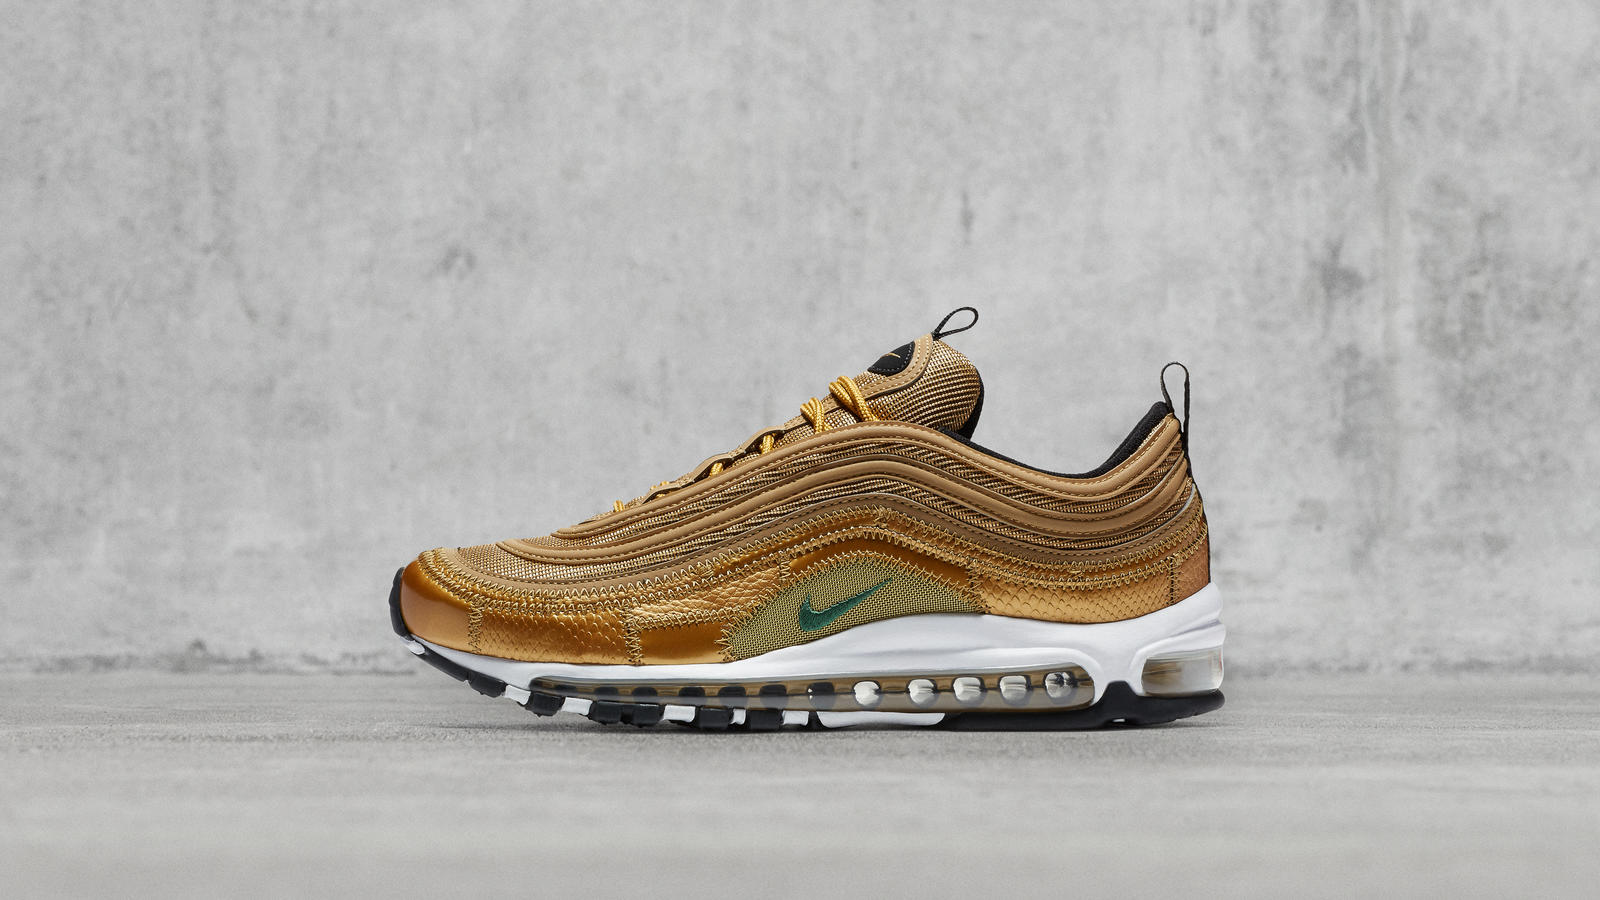 We're Giving Away the Ultimate Nike Air Max 97 Pack